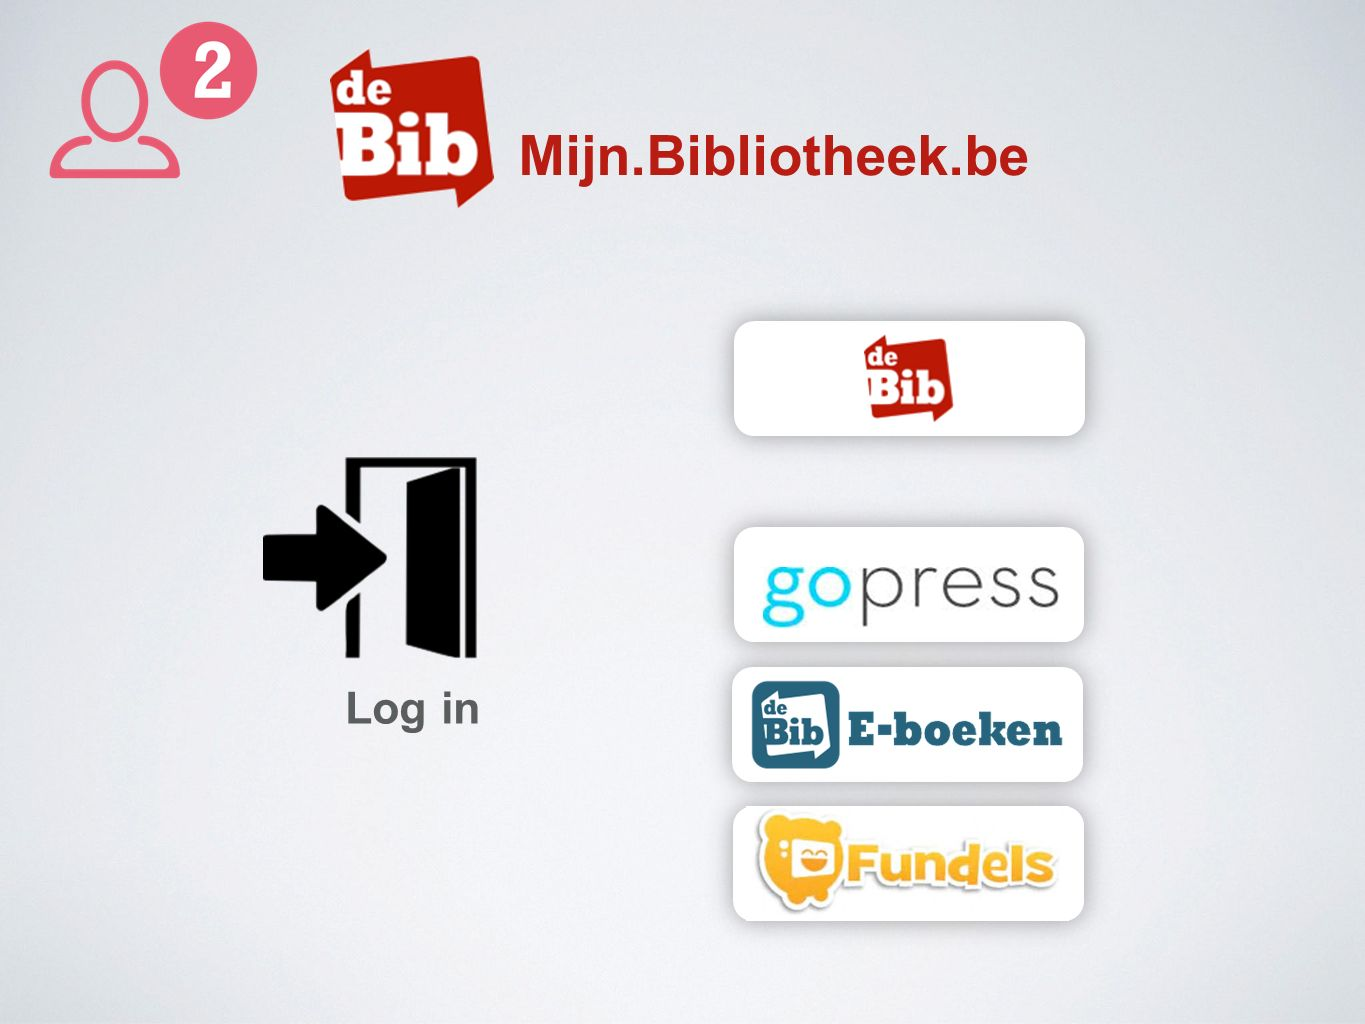 Mijn.Bibliotheek.be Log in